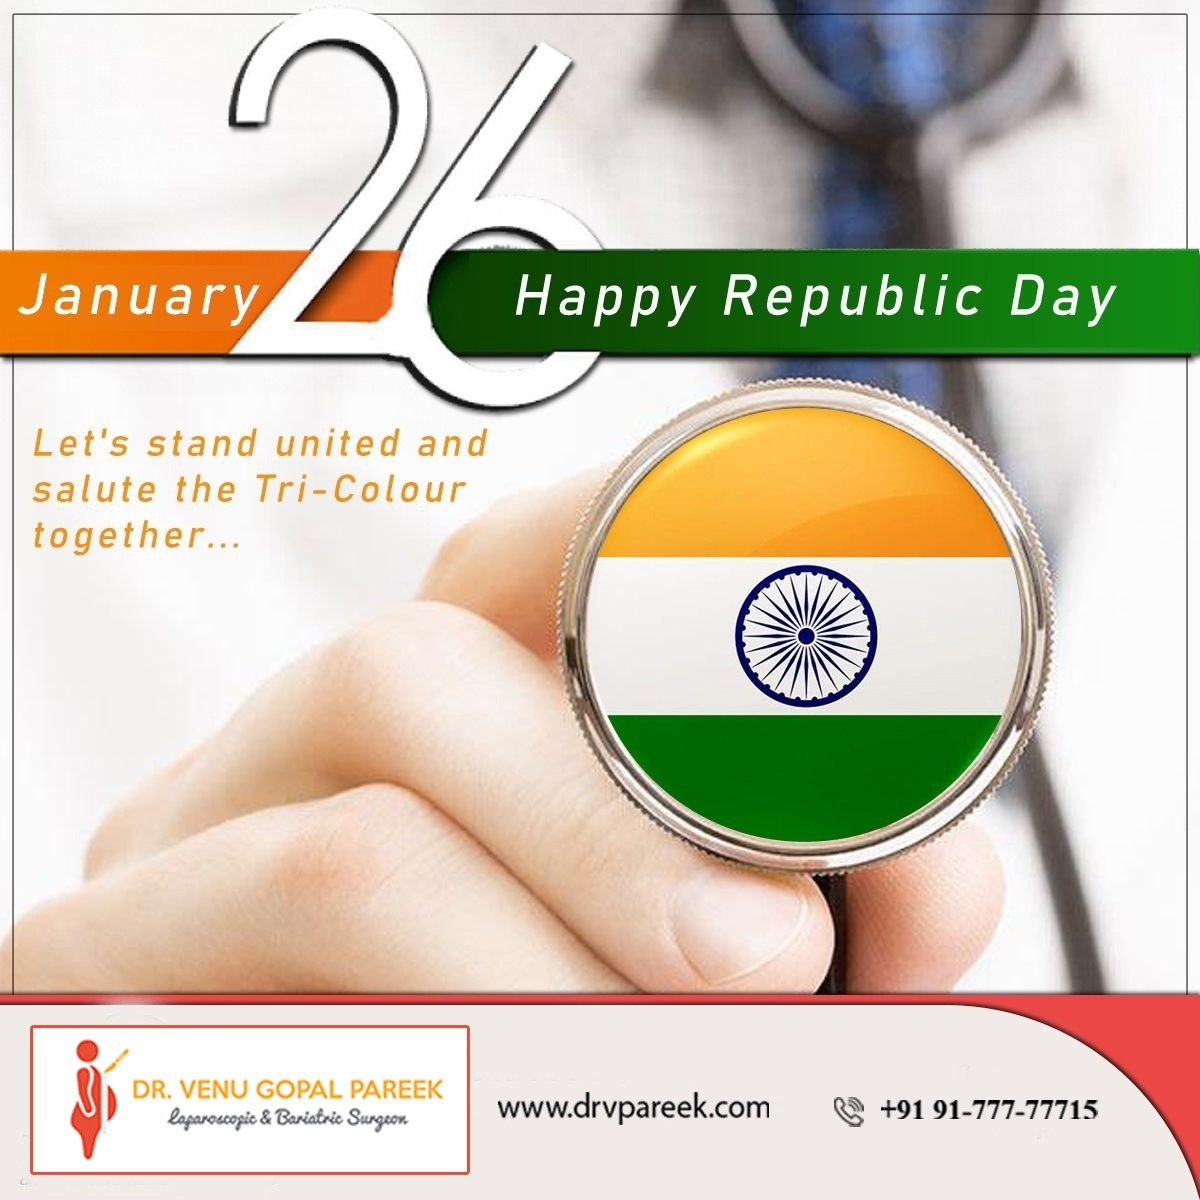 Happy Republic Day wishes by Bariatric surgeon India clinic, One of the best Weight loss surgery center in Hyderabad